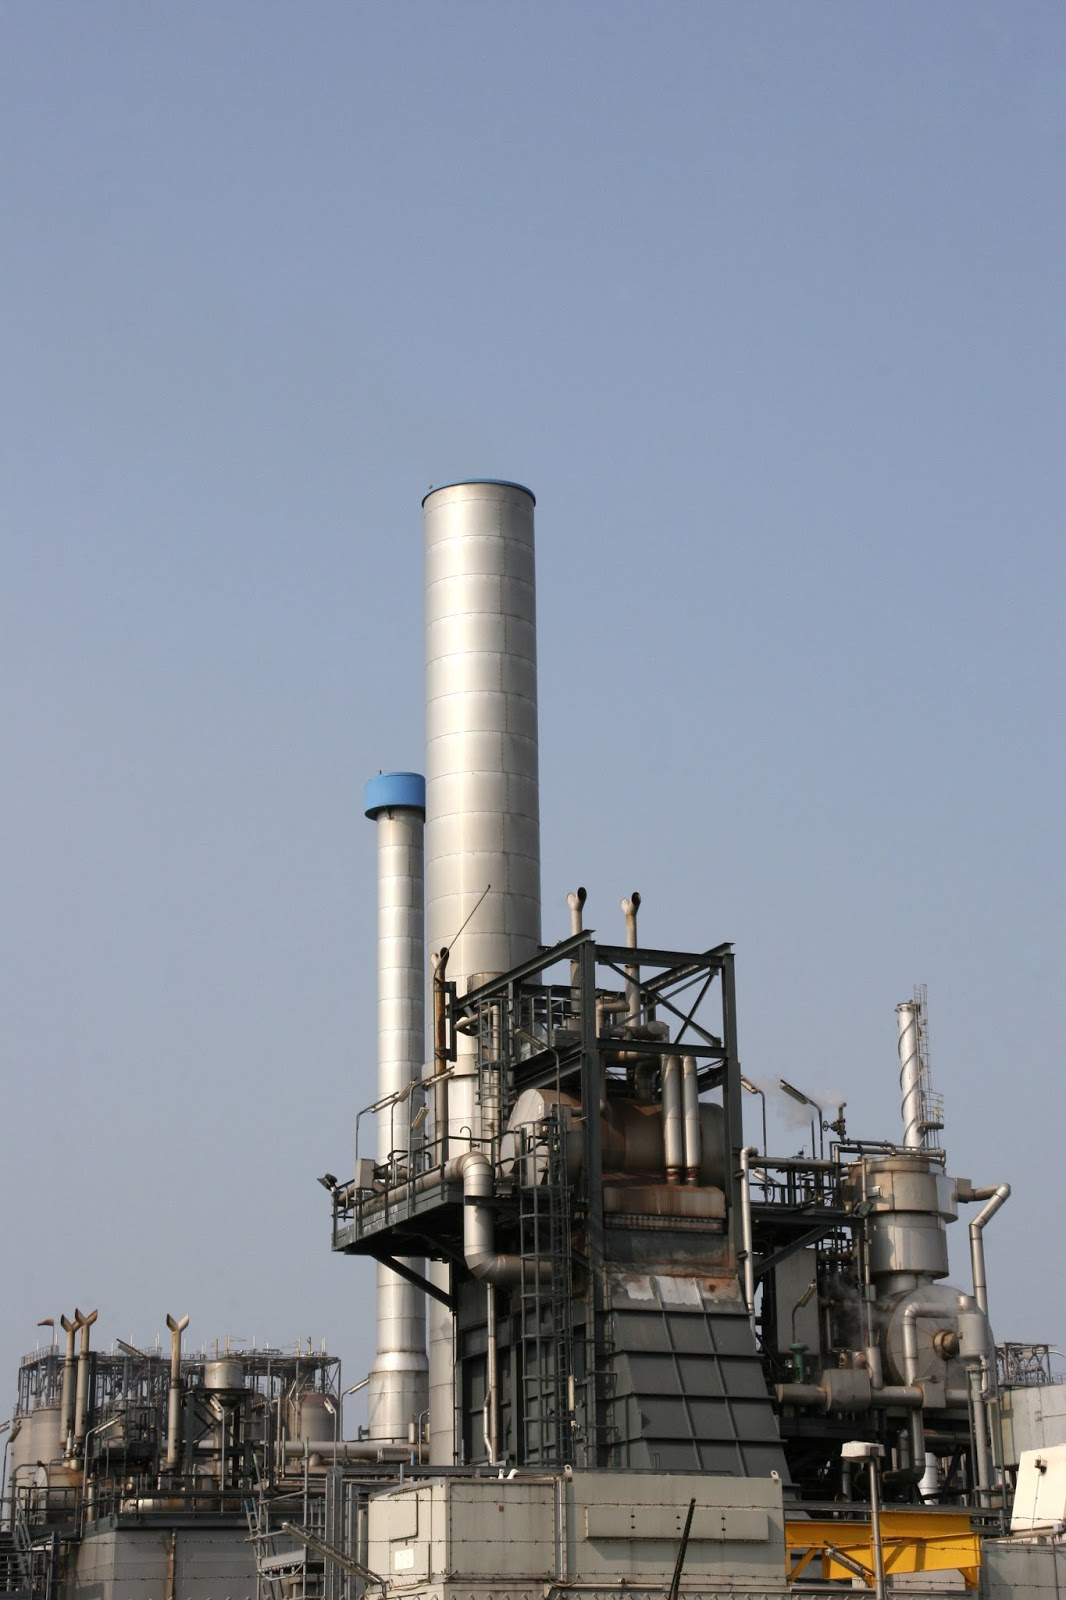 CTI Controltech Industrial Combustion and Process Control